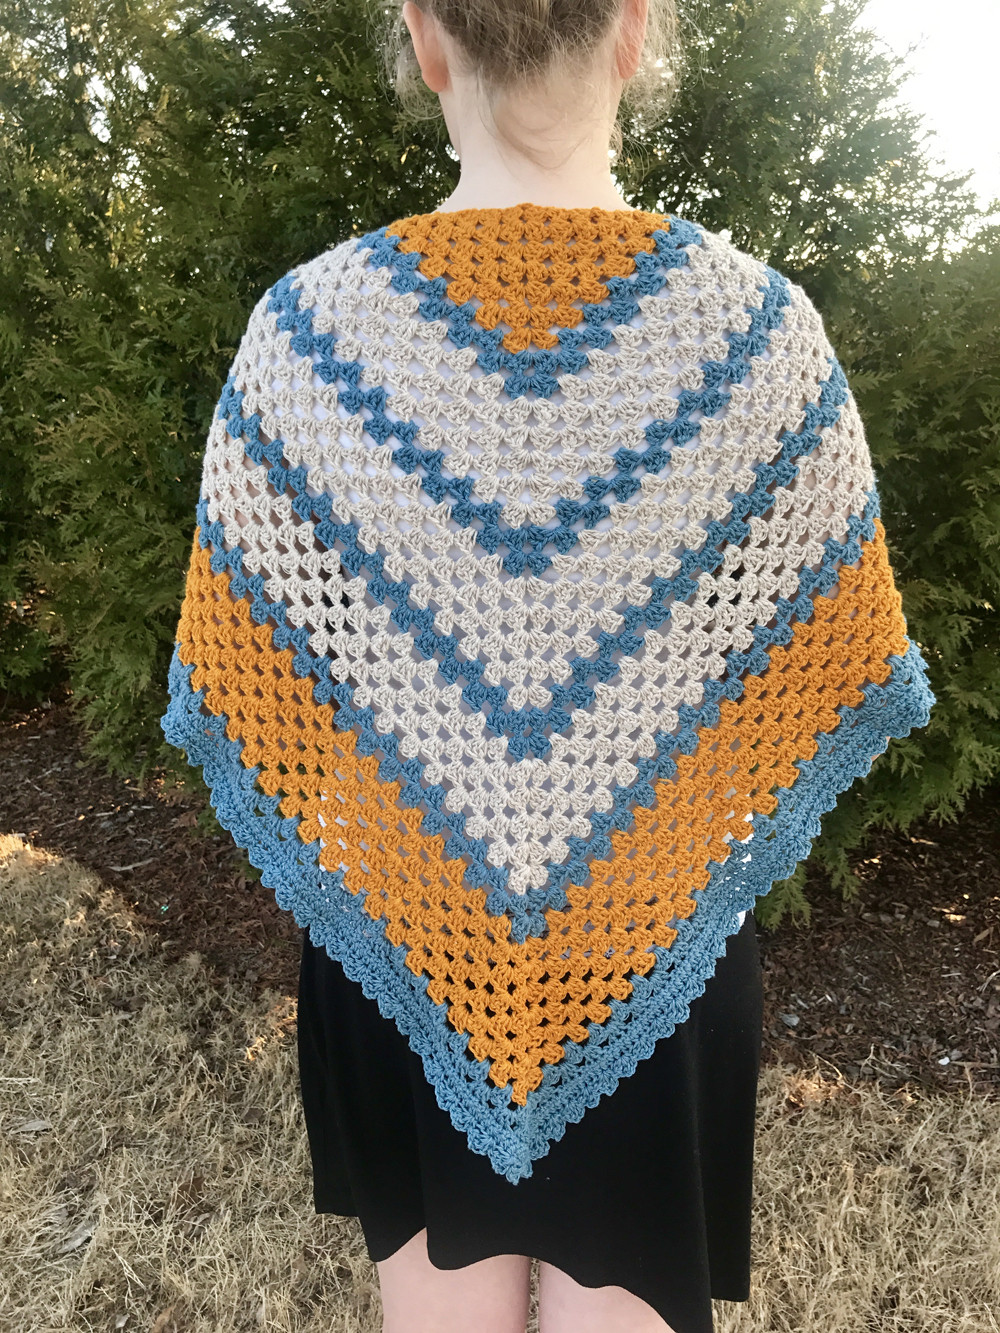 Triangle Shawl Crochet Pattern Luxury Yarn Review Natural Fiber Producers Sport Weight Yarn Of Luxury 45 Pics Triangle Shawl Crochet Pattern